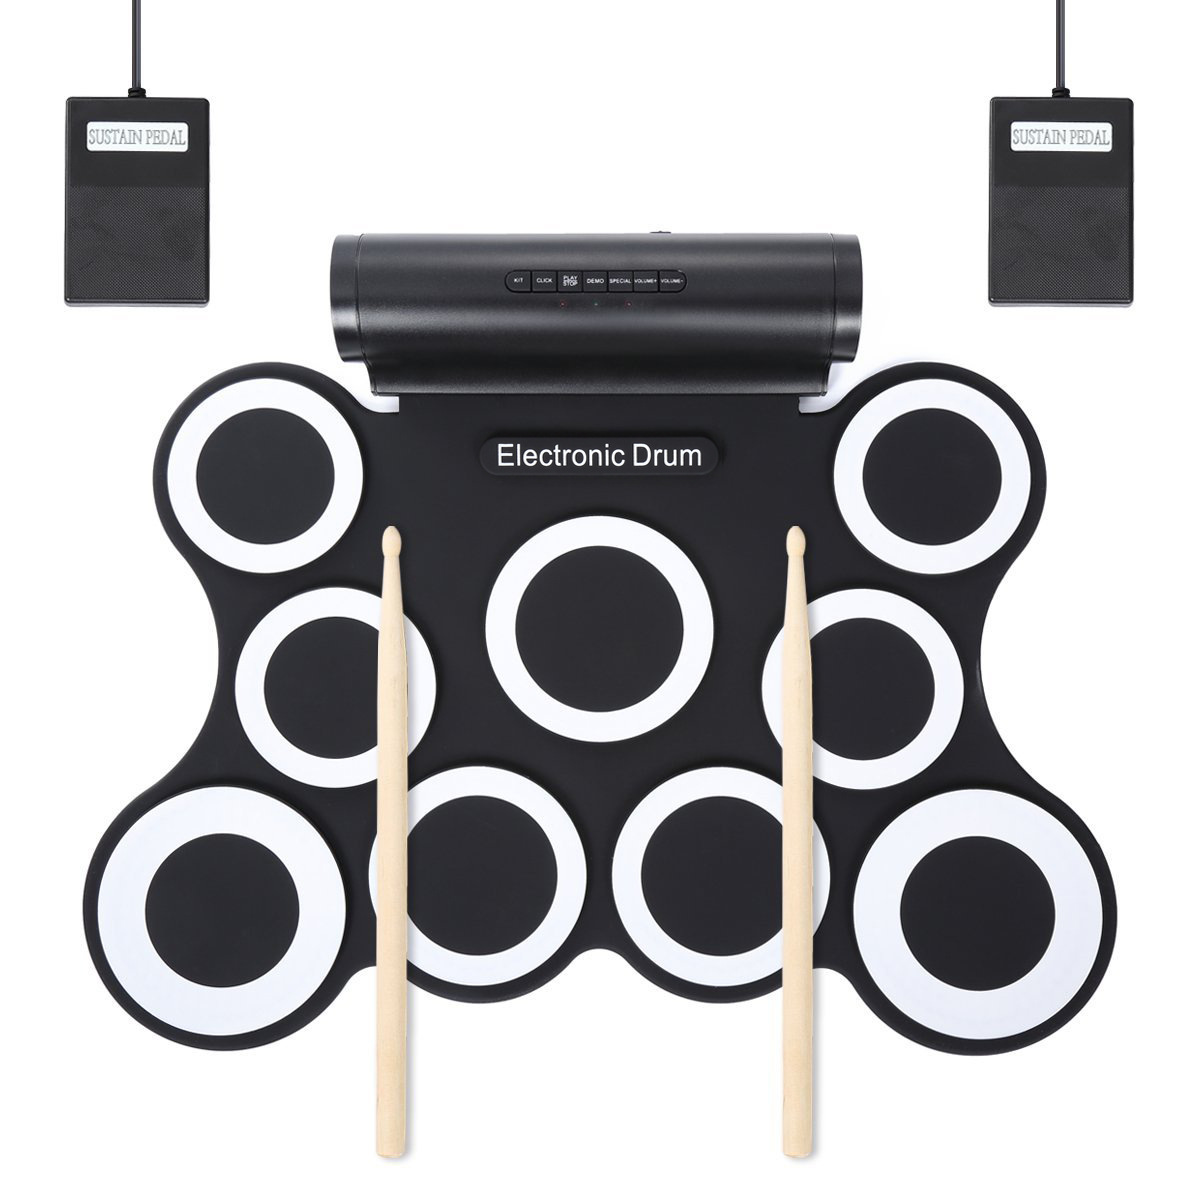 2018-9 Drum Pad Convenient Hand Roll Electronic Drum Kit Jazz Drum Play Computer Game Percussion Instrument